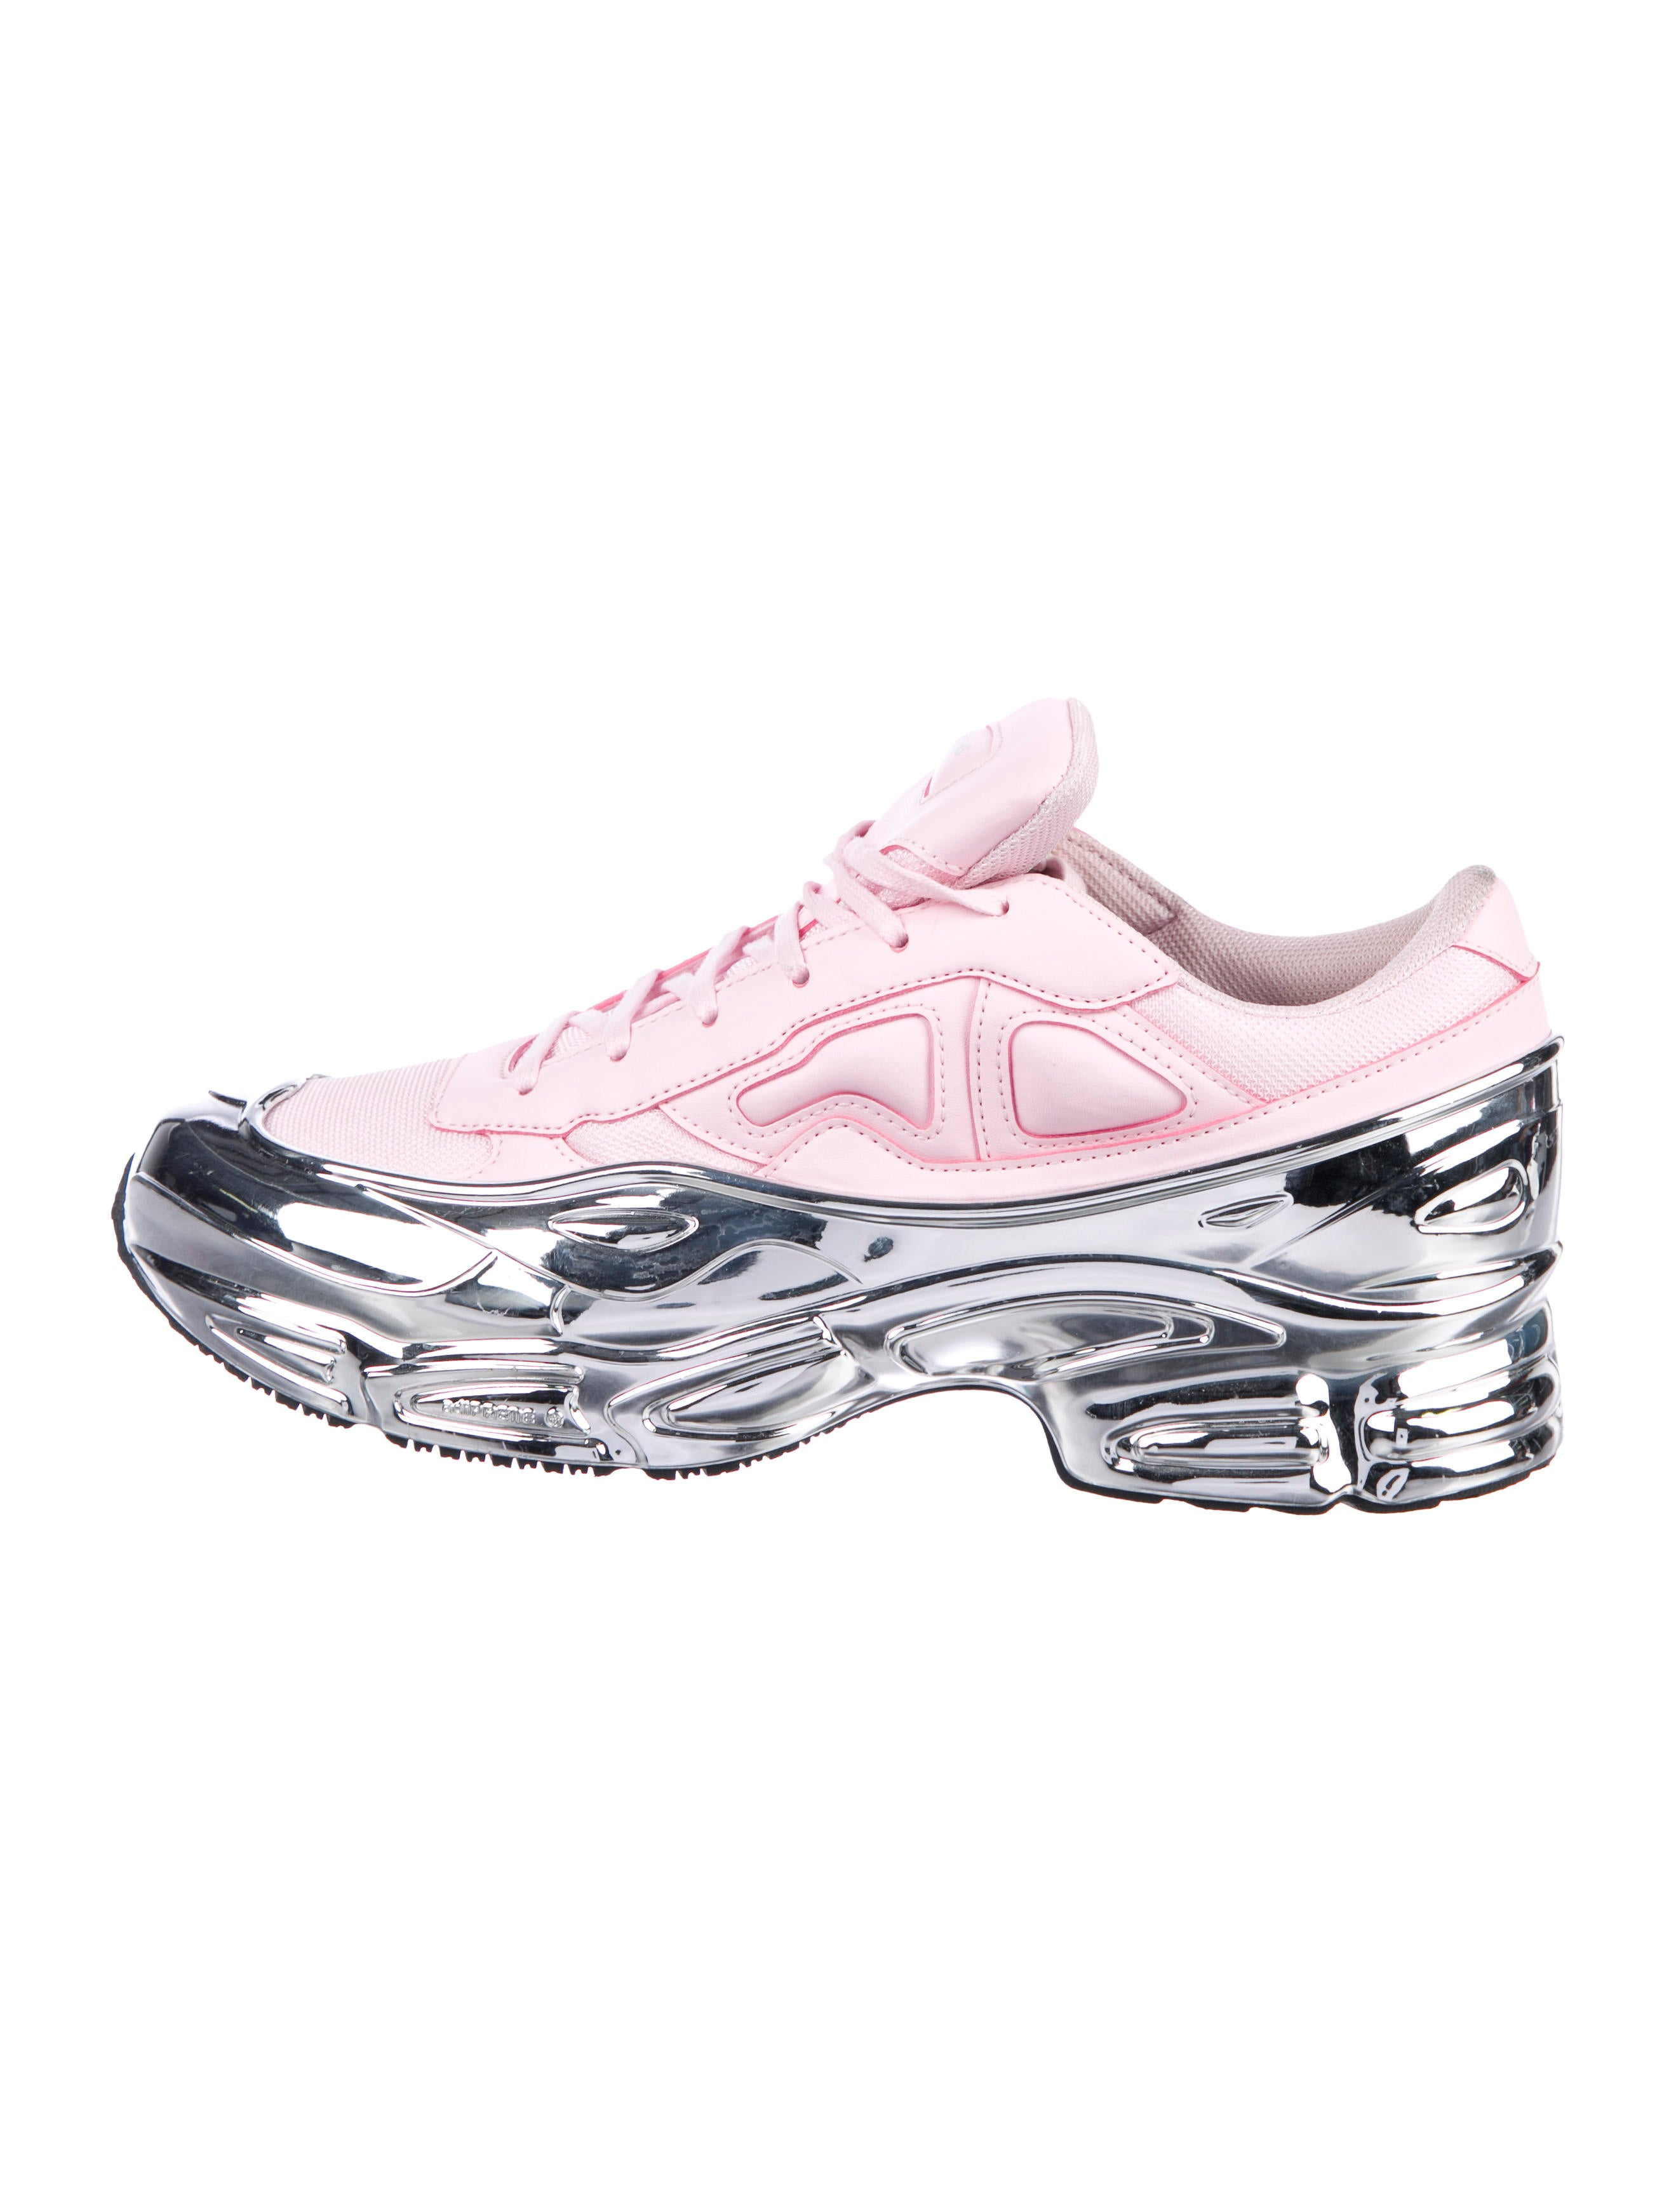 Raf Simons x adidas Ozweego Mirrored Clear Pink Sneakers - Shoes ...